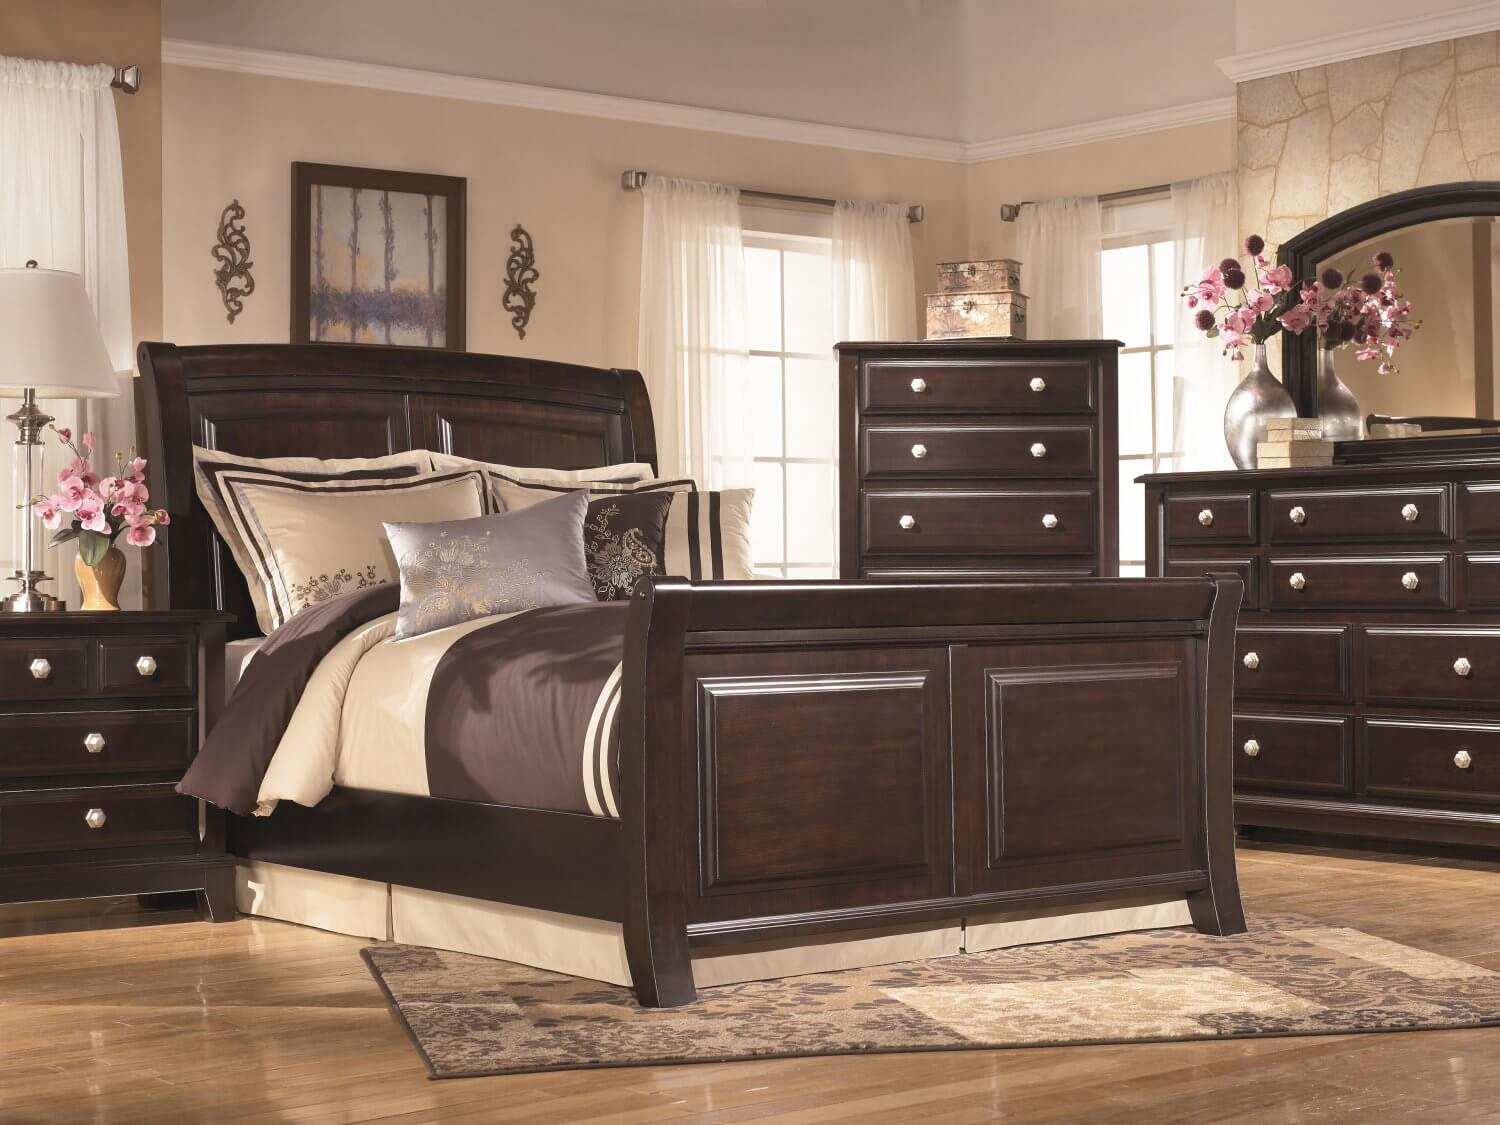 Bedroom Decorating Ideas For Every Aesthetic Ashley Homestore